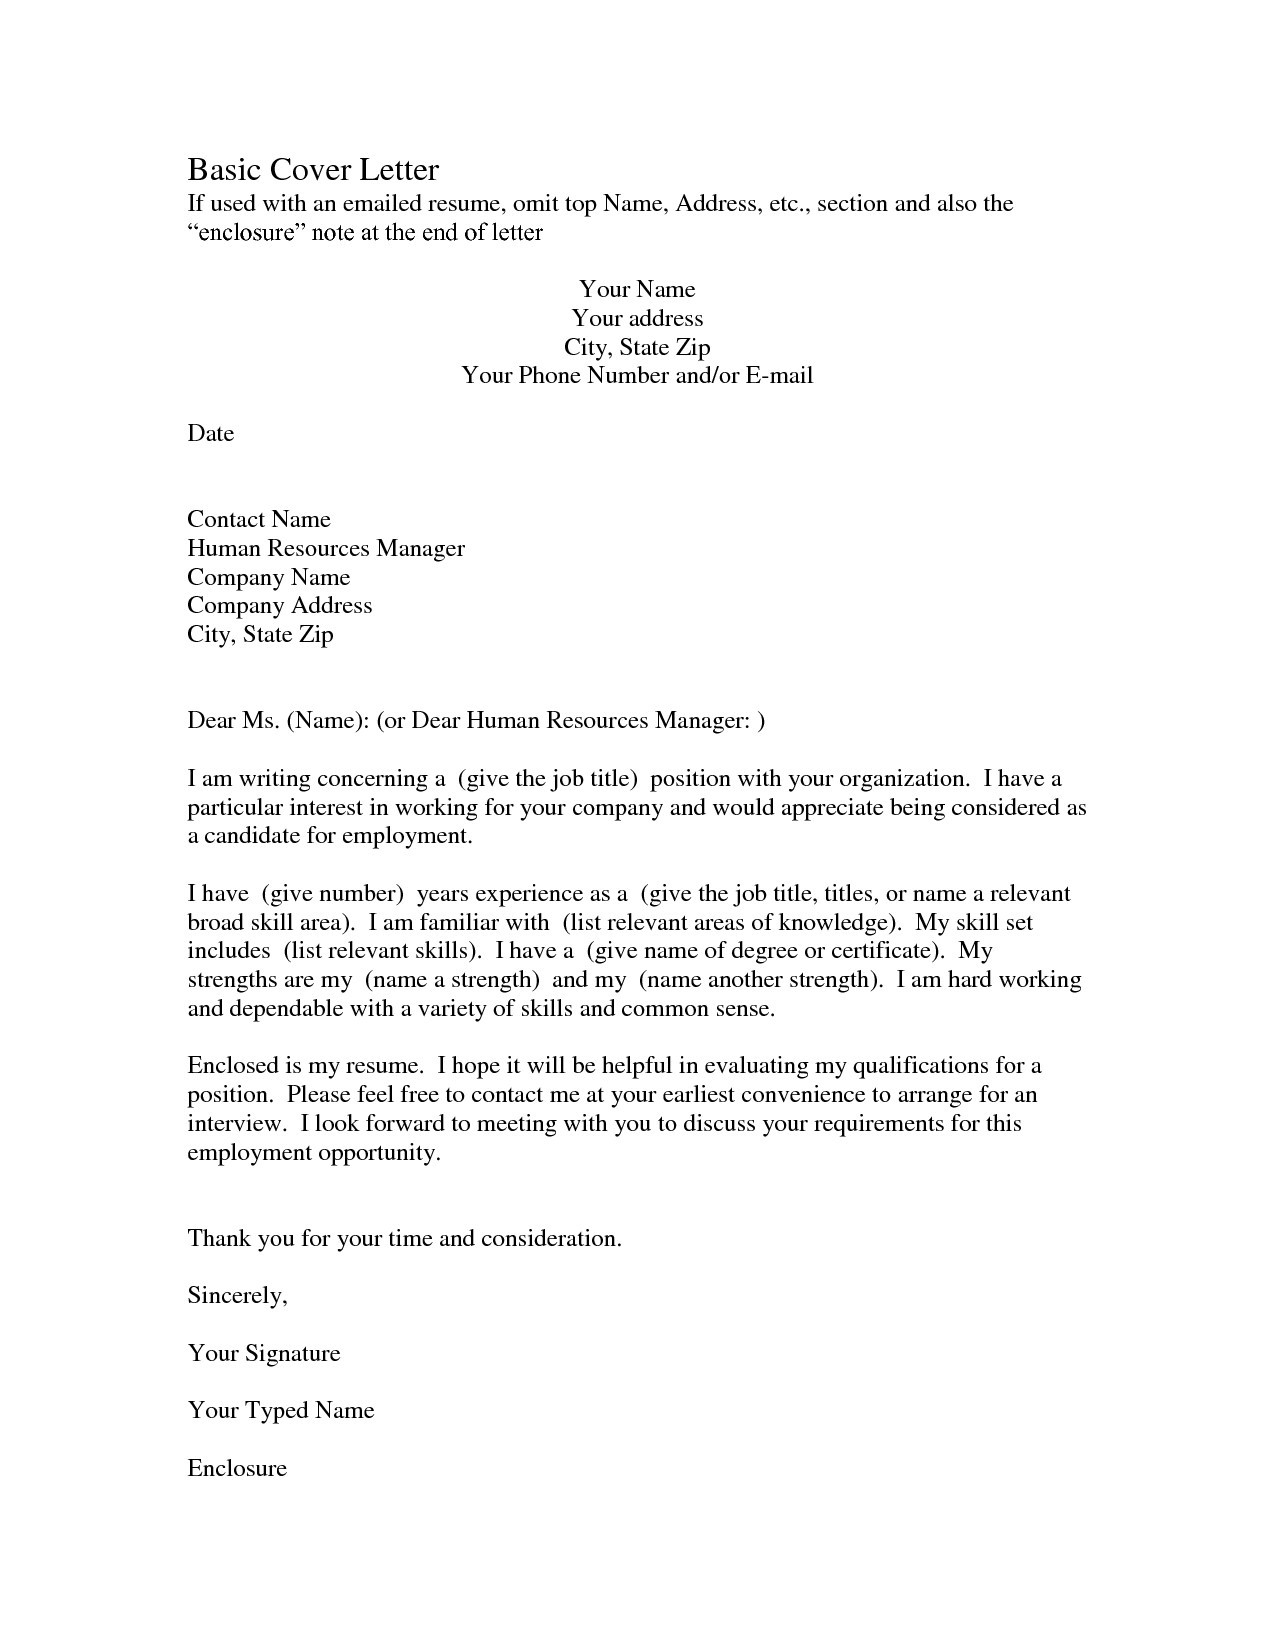 Letter Confirming Employment Free Template - Free Employment Applications Template Recordplayerorchestra